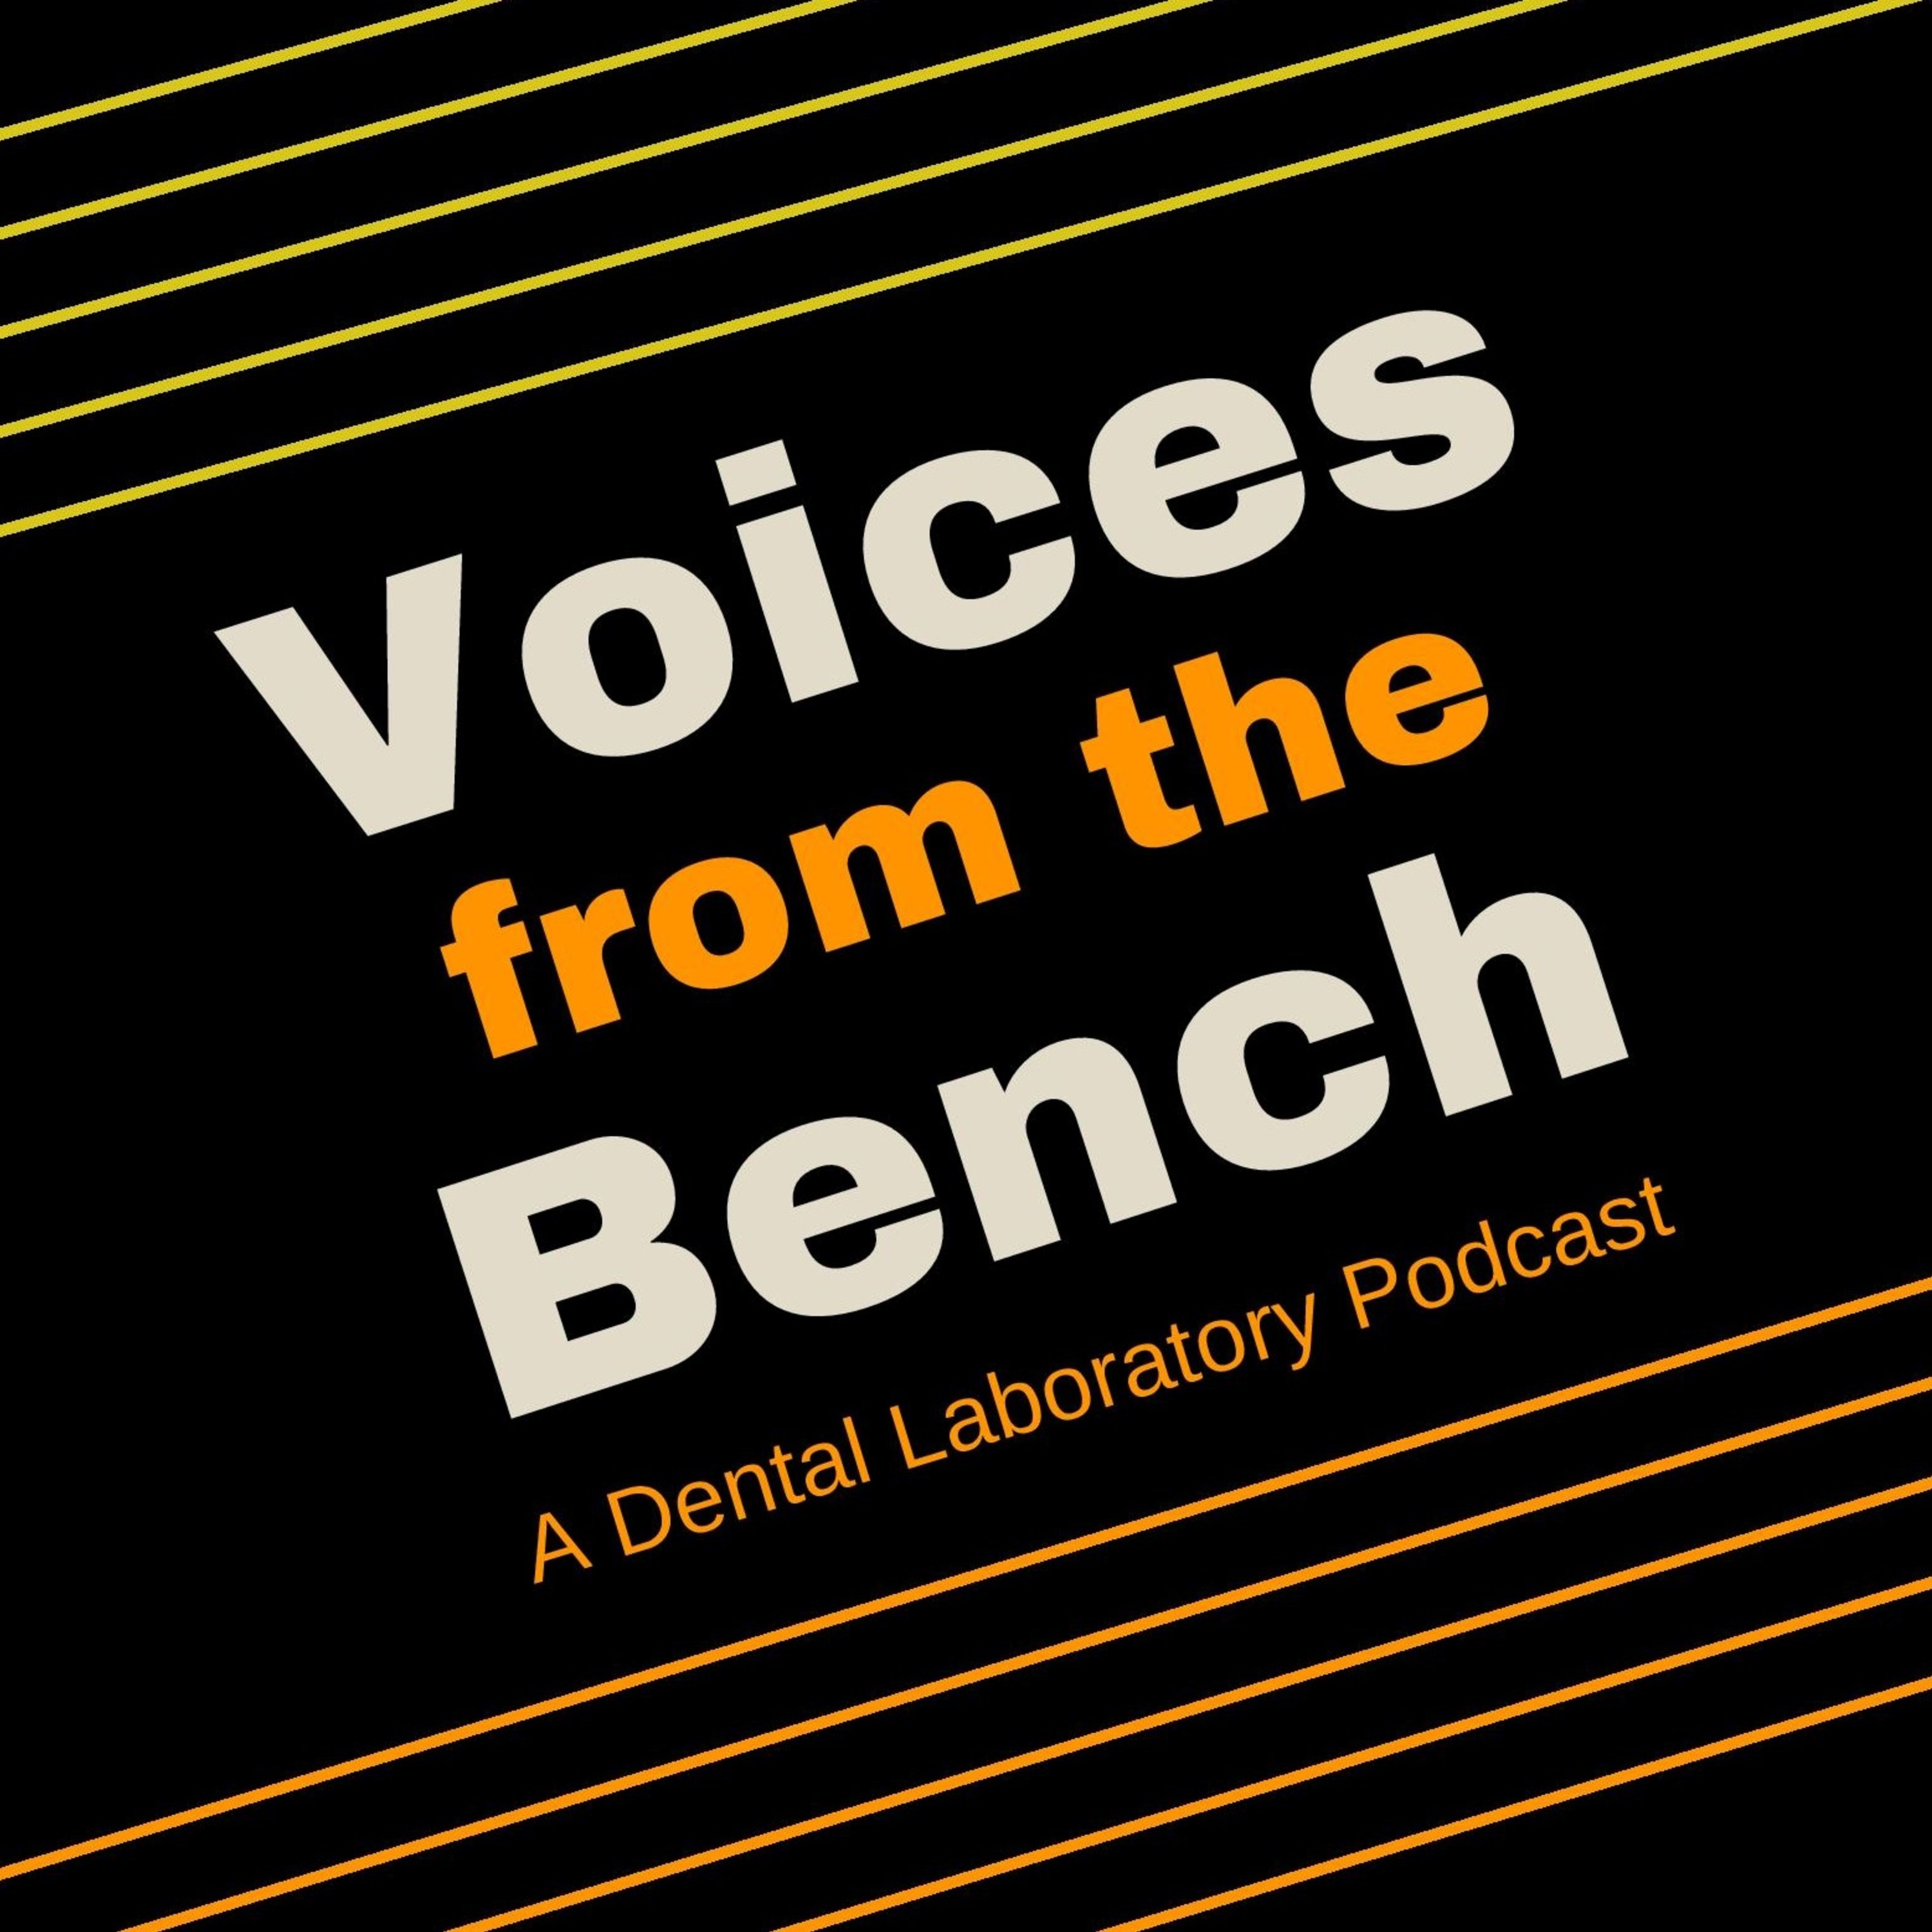 155: The Art of Making Ugly Teeth for Films: Gary Archer